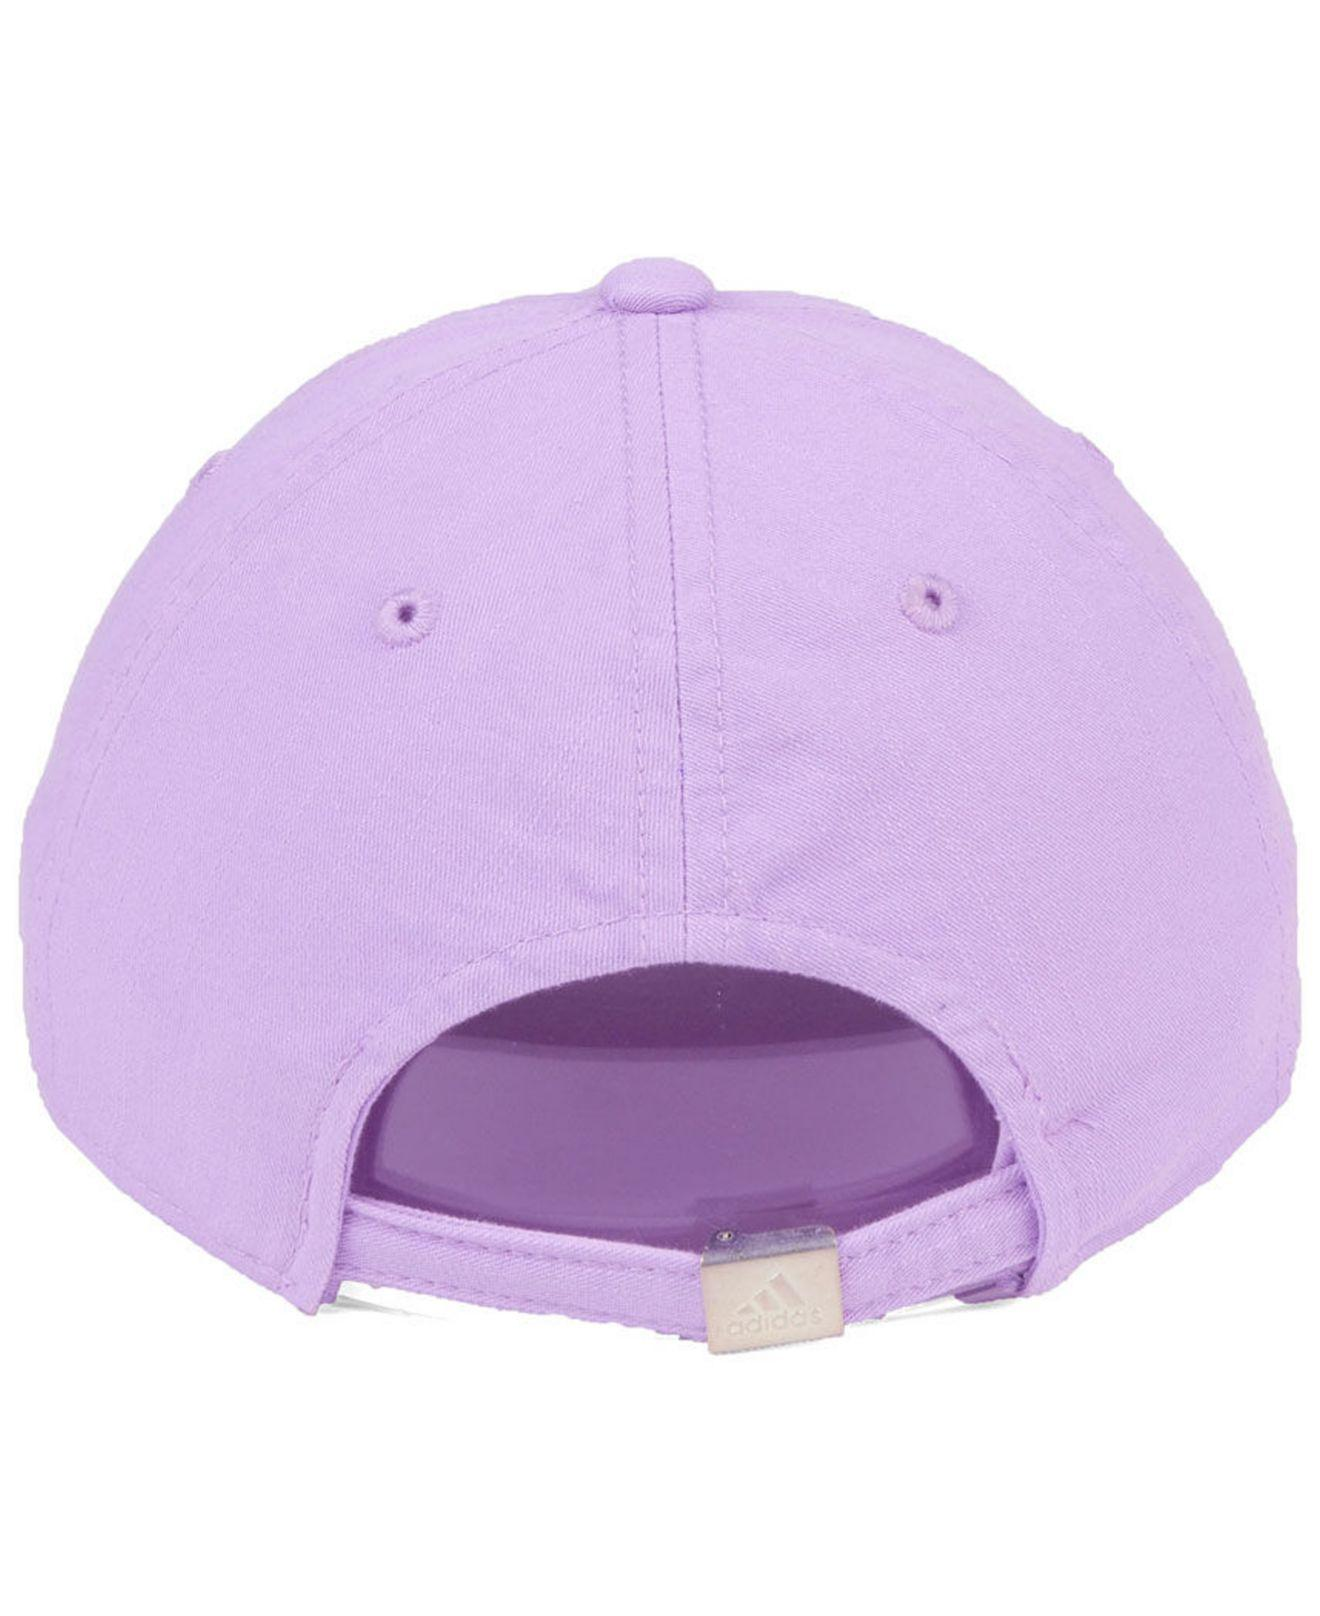 fb0dc0dfdea ... coupon code for adidas purple dc united pink slouch cap lyst. view  fullscreen aec36 edf2f